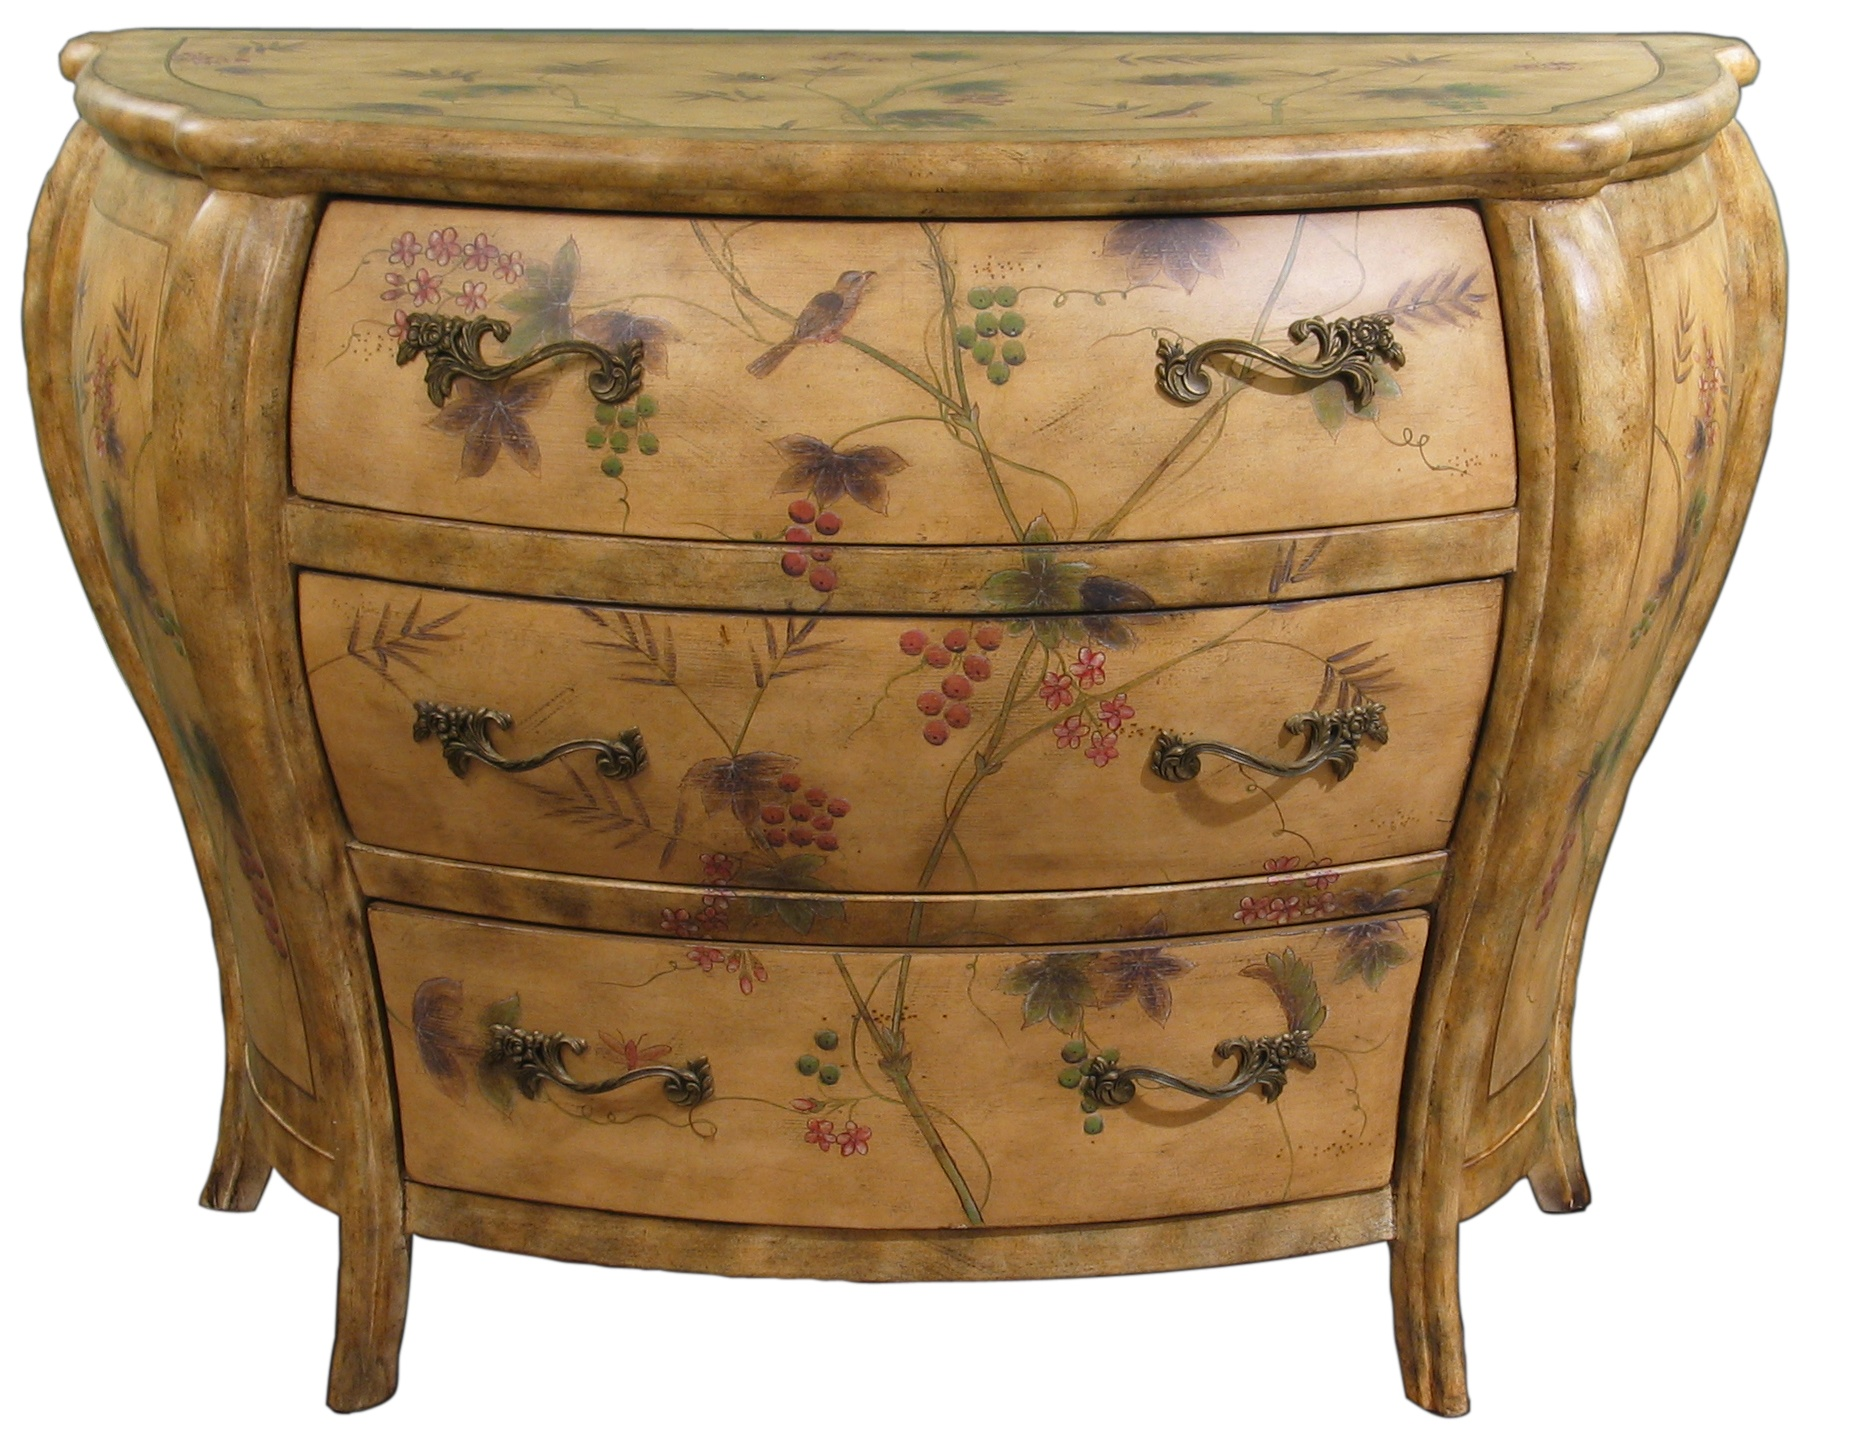 furniture-1-1425794